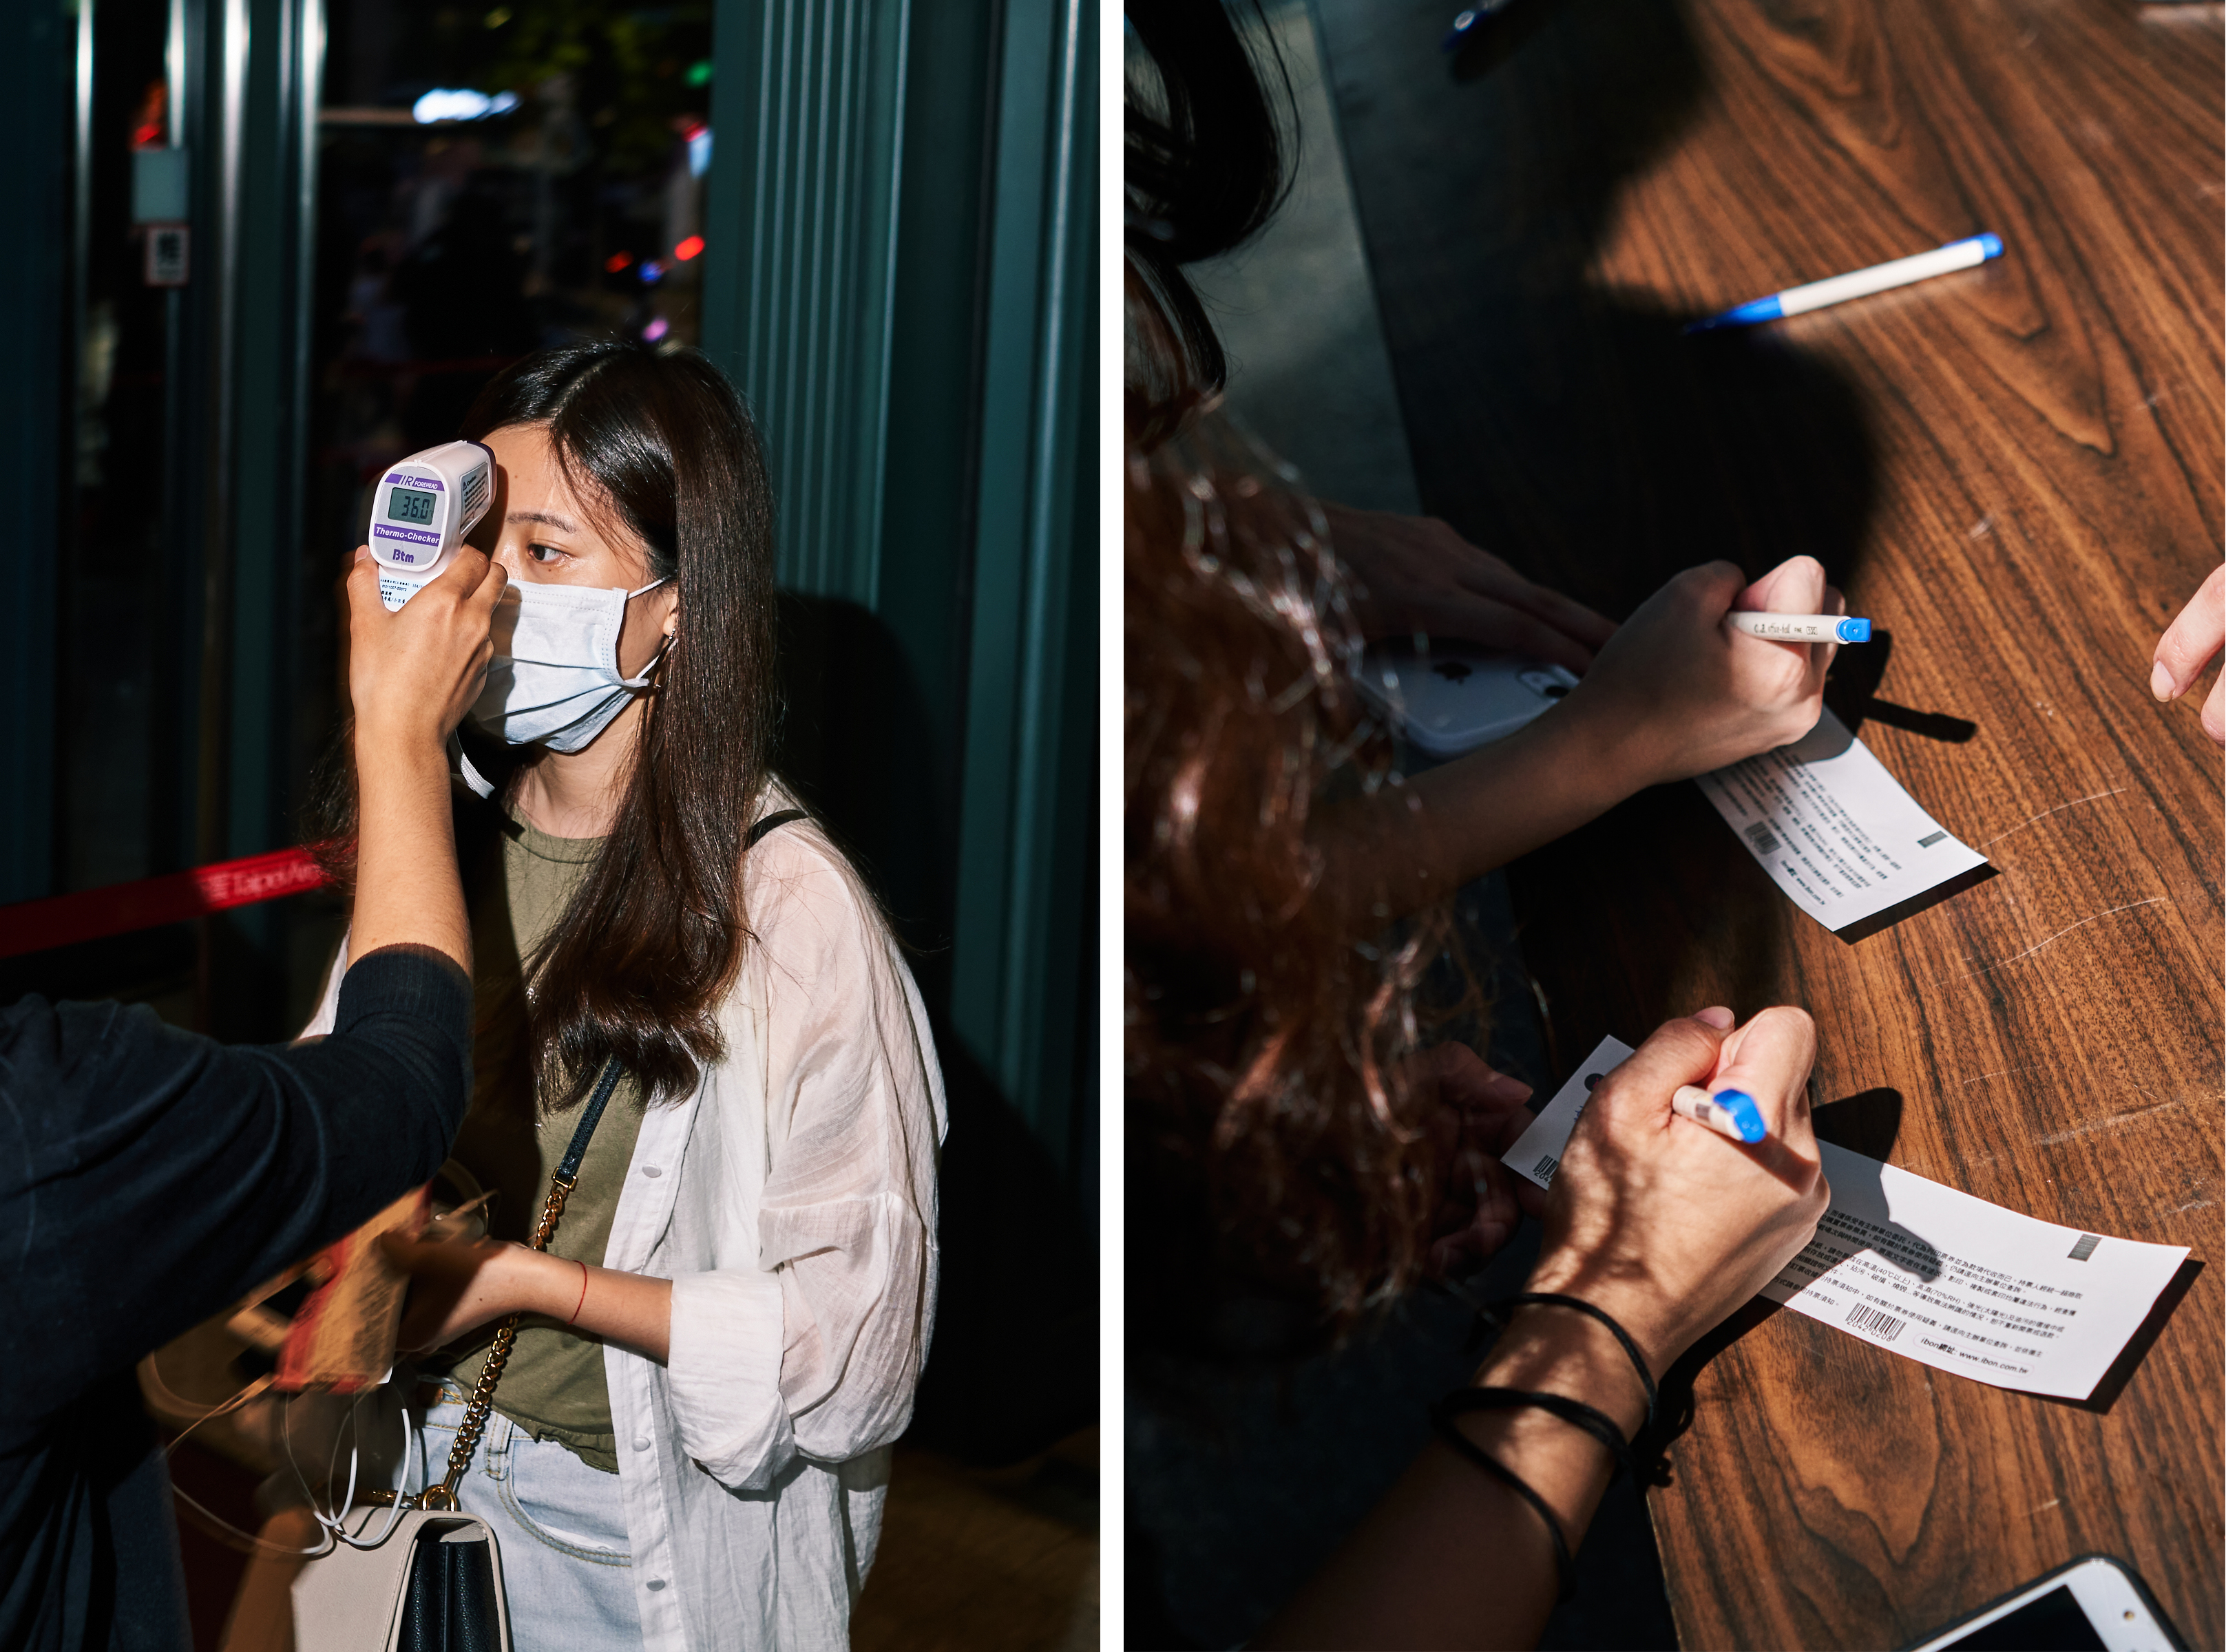 Left: An attendee receives a temperature check. Based on guidelines from the Taipei City Government Department of Health, no individual with a forehead temperature above 37.5°C (99.5°F) and ear temperature above 38°C (100.4°F) could enter the venue. Right: Attendees write personal information on their ticket stubs to submit to venue staff before entering the Taipei Arena